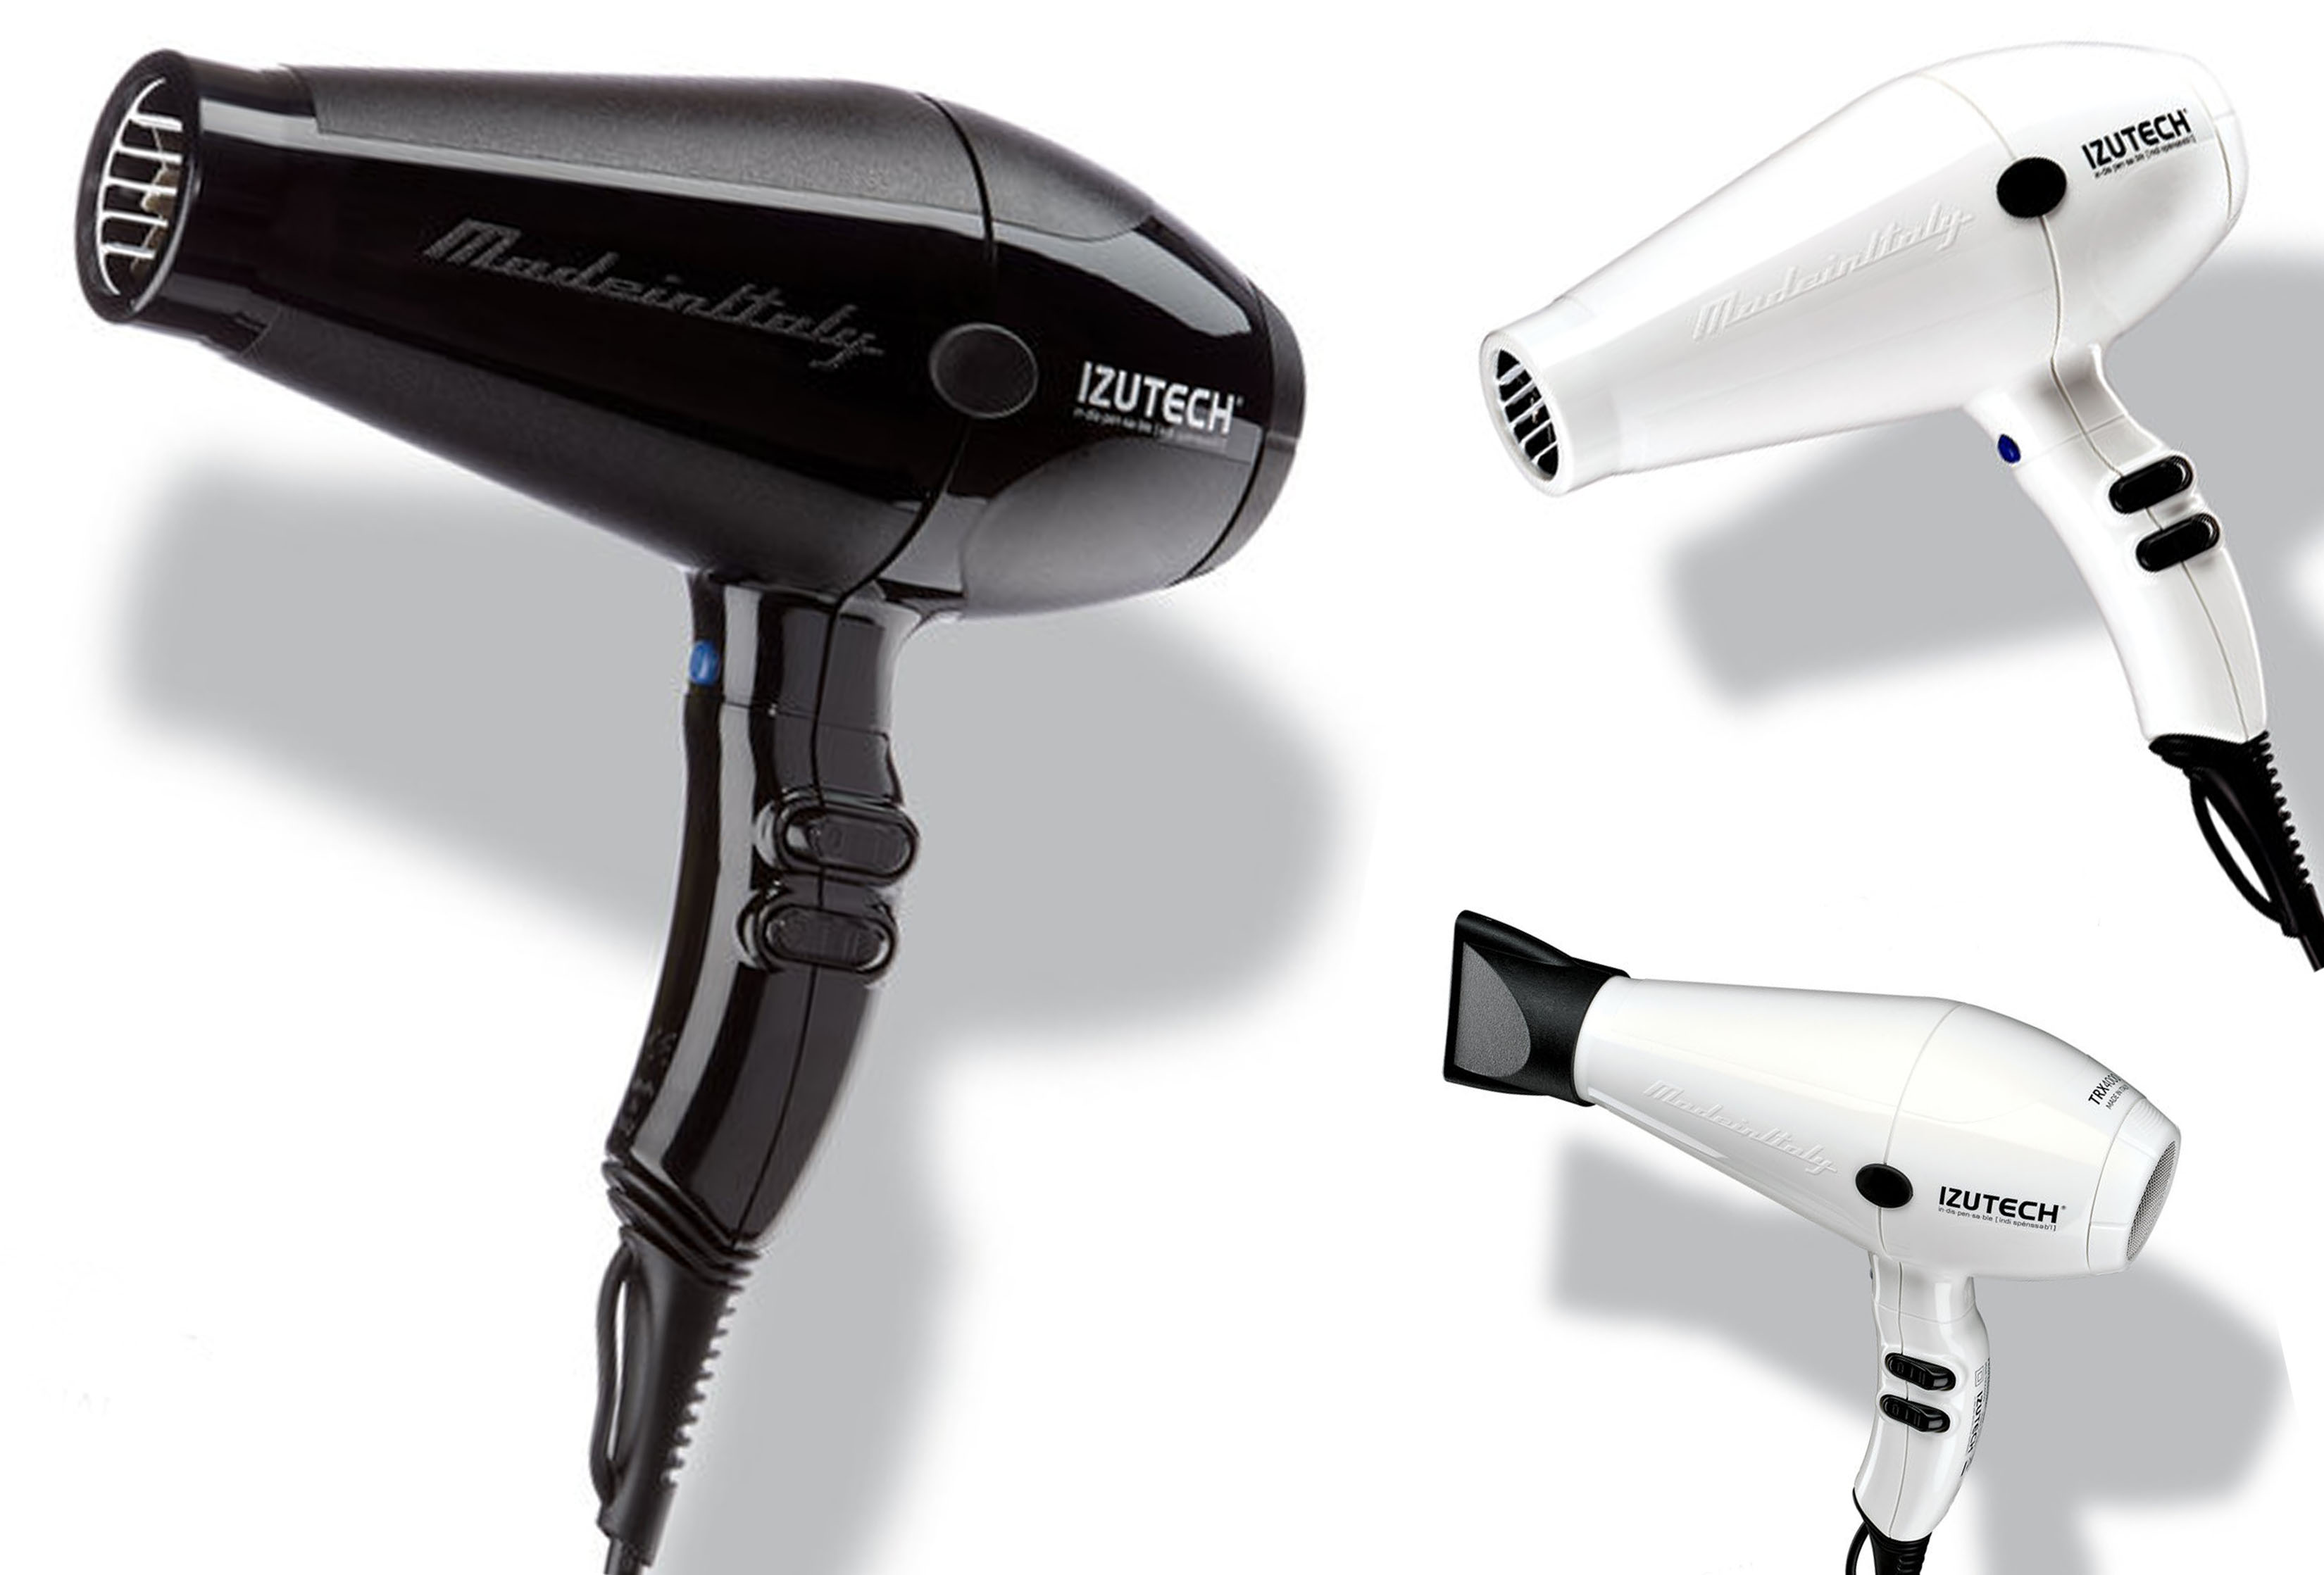 Izutech blow dryer